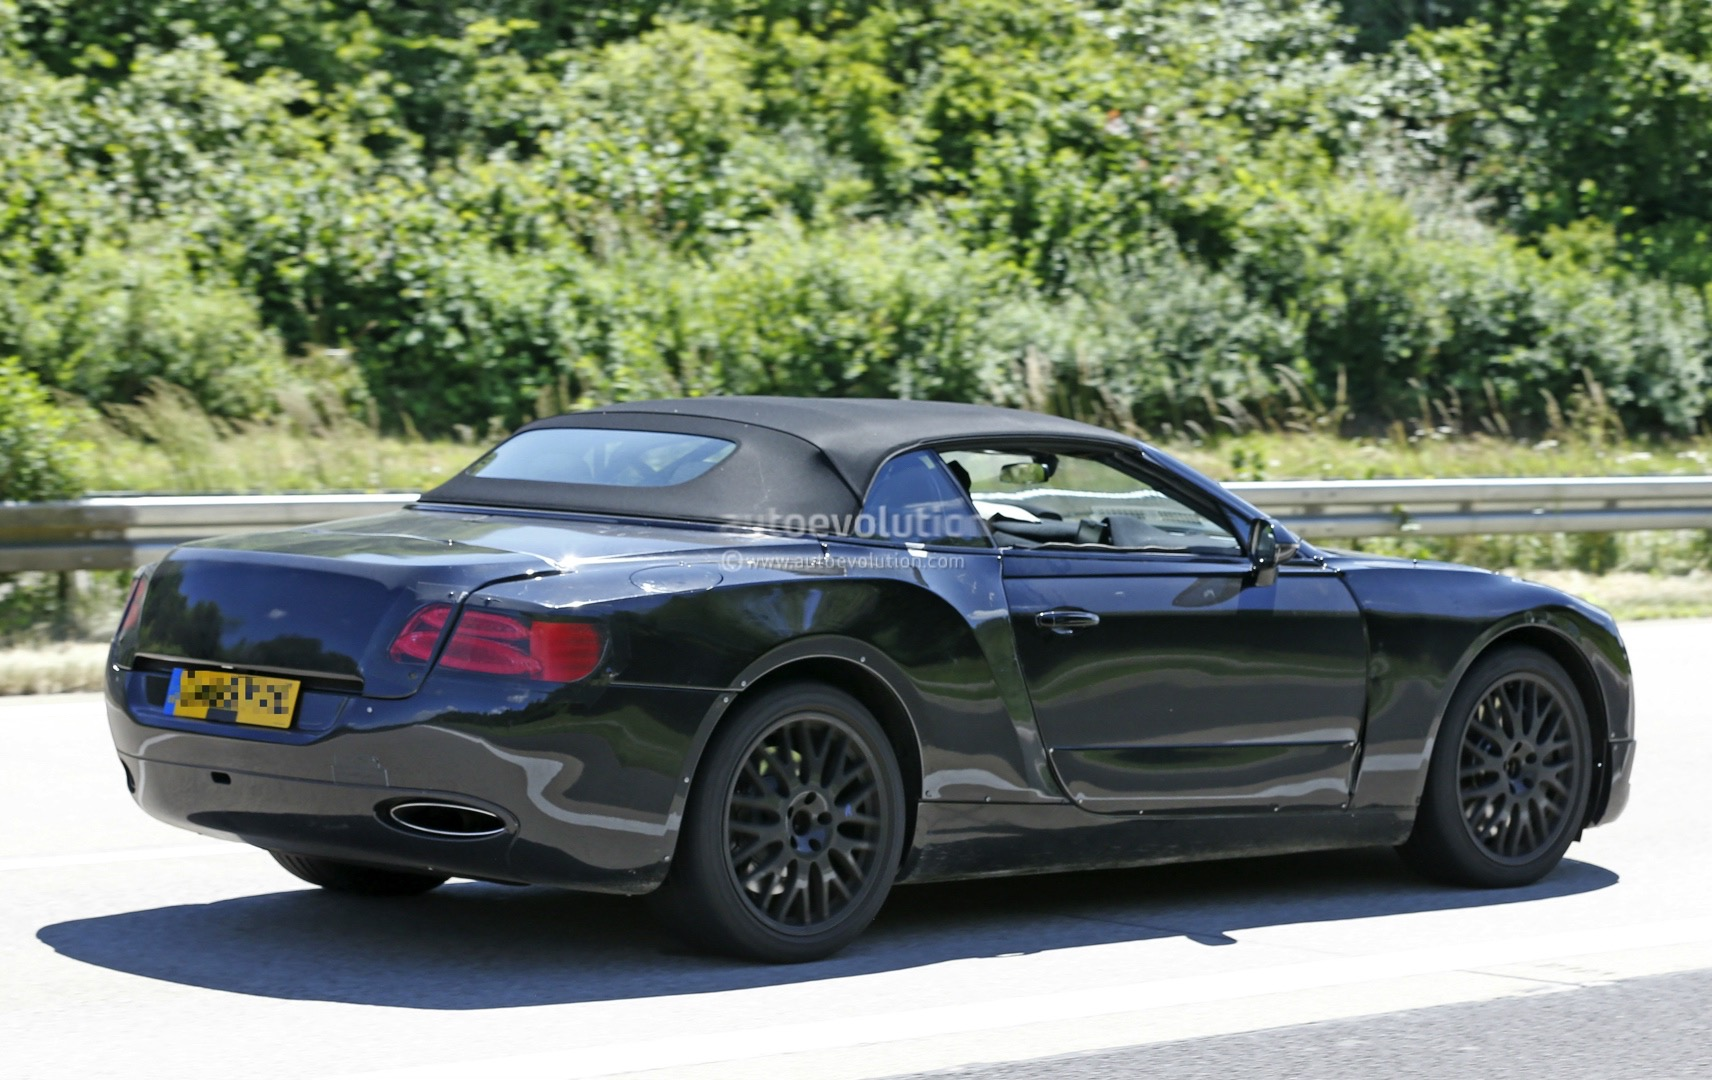 2018 Bentley Continental Gtc Says Cheese To The Camera